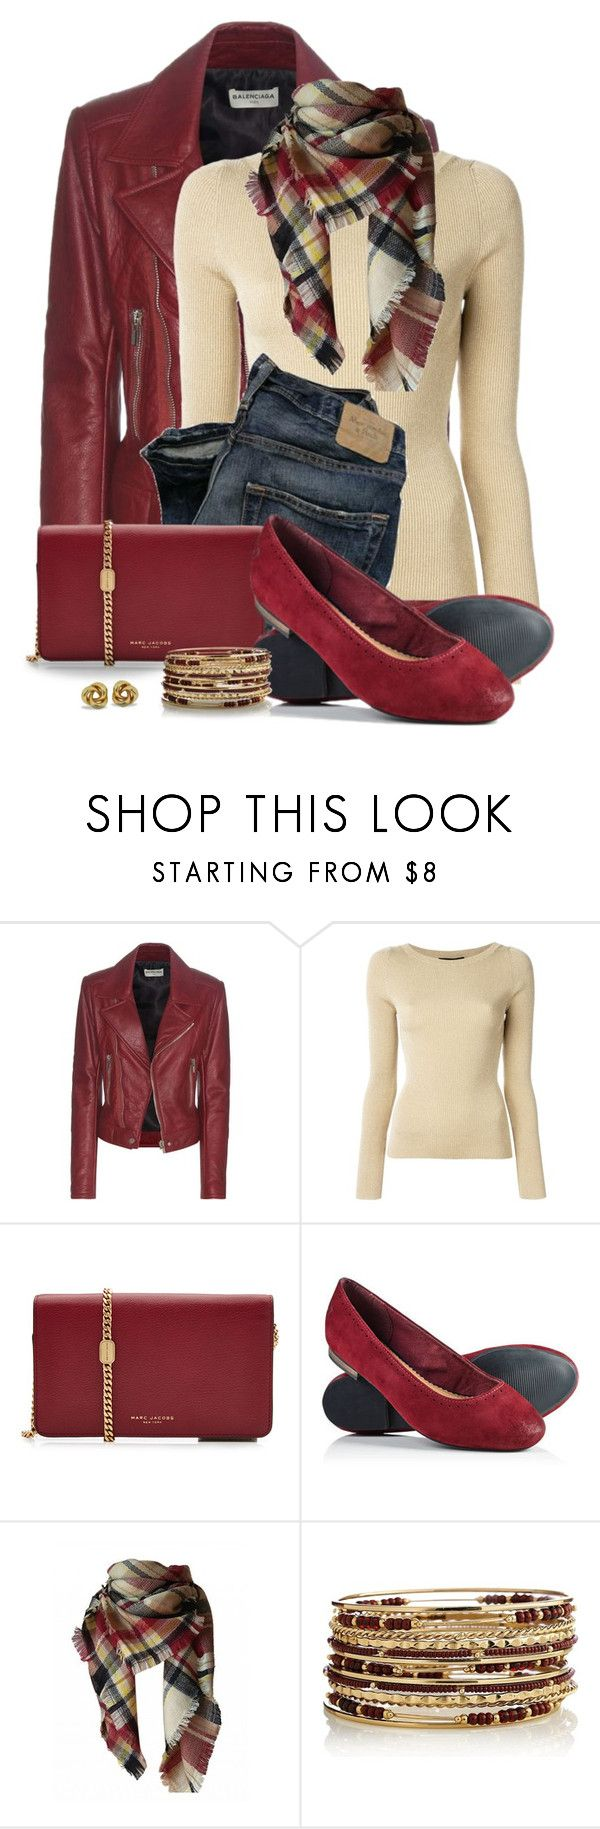 """""""Burgundy Bag and Shoes"""" by snickersmother ❤ liked on Polyvore featuring Balenciaga, Dolce&Gabbana, RGB, Marc Jacobs and Superdry"""